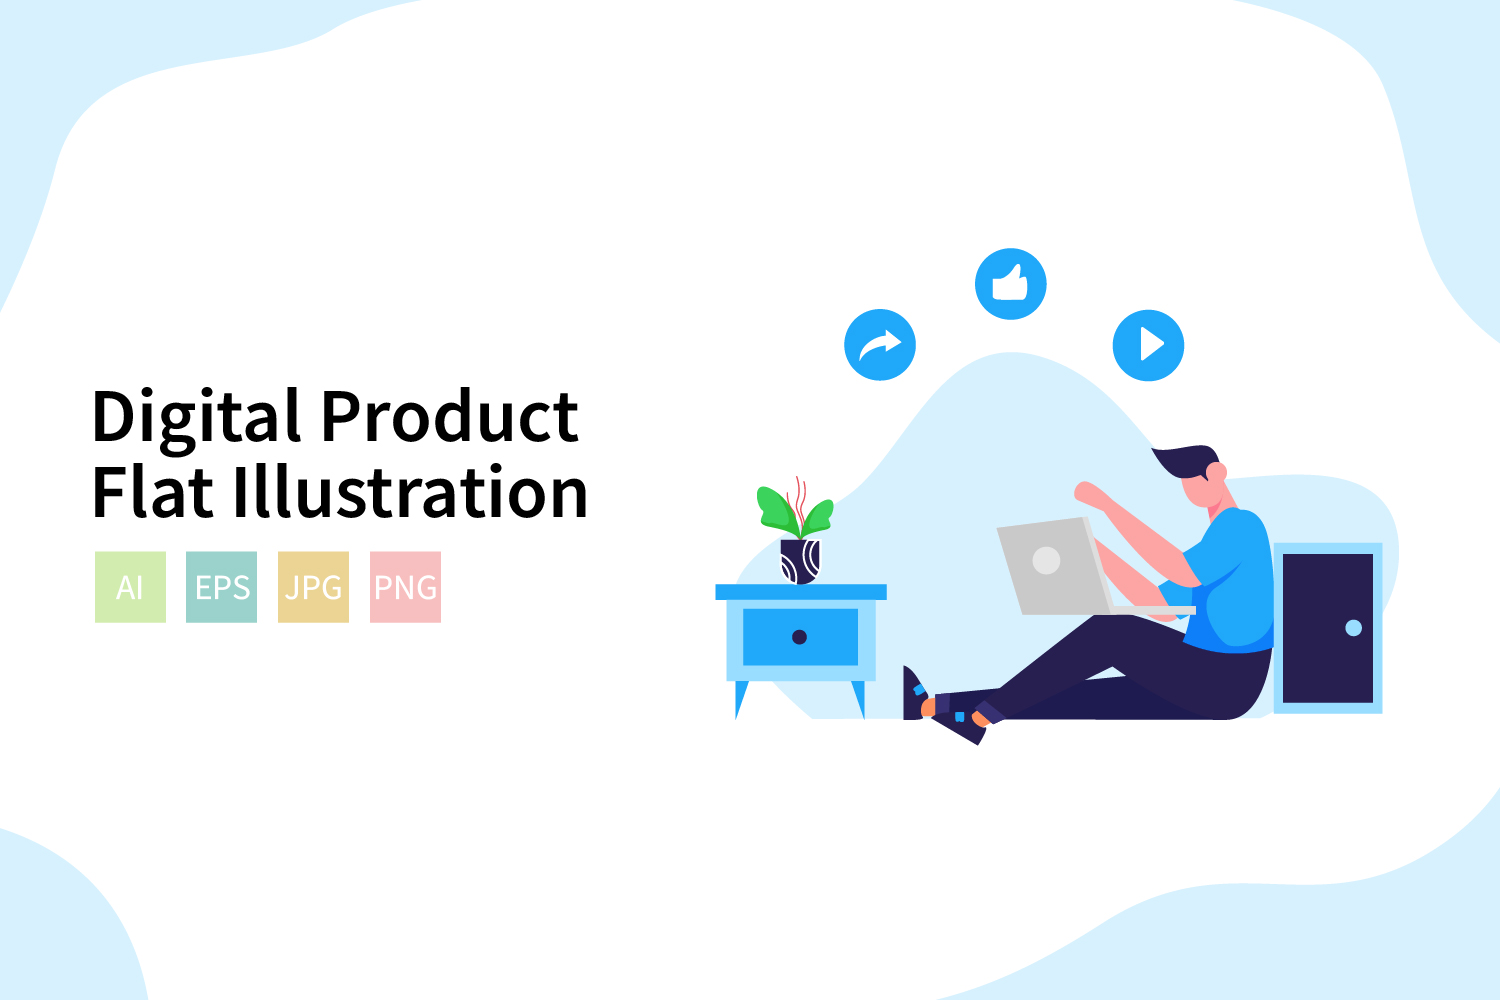 Download Free Digital Product Flat Vector Illustration Graphic By Sixtwenty for Cricut Explore, Silhouette and other cutting machines.